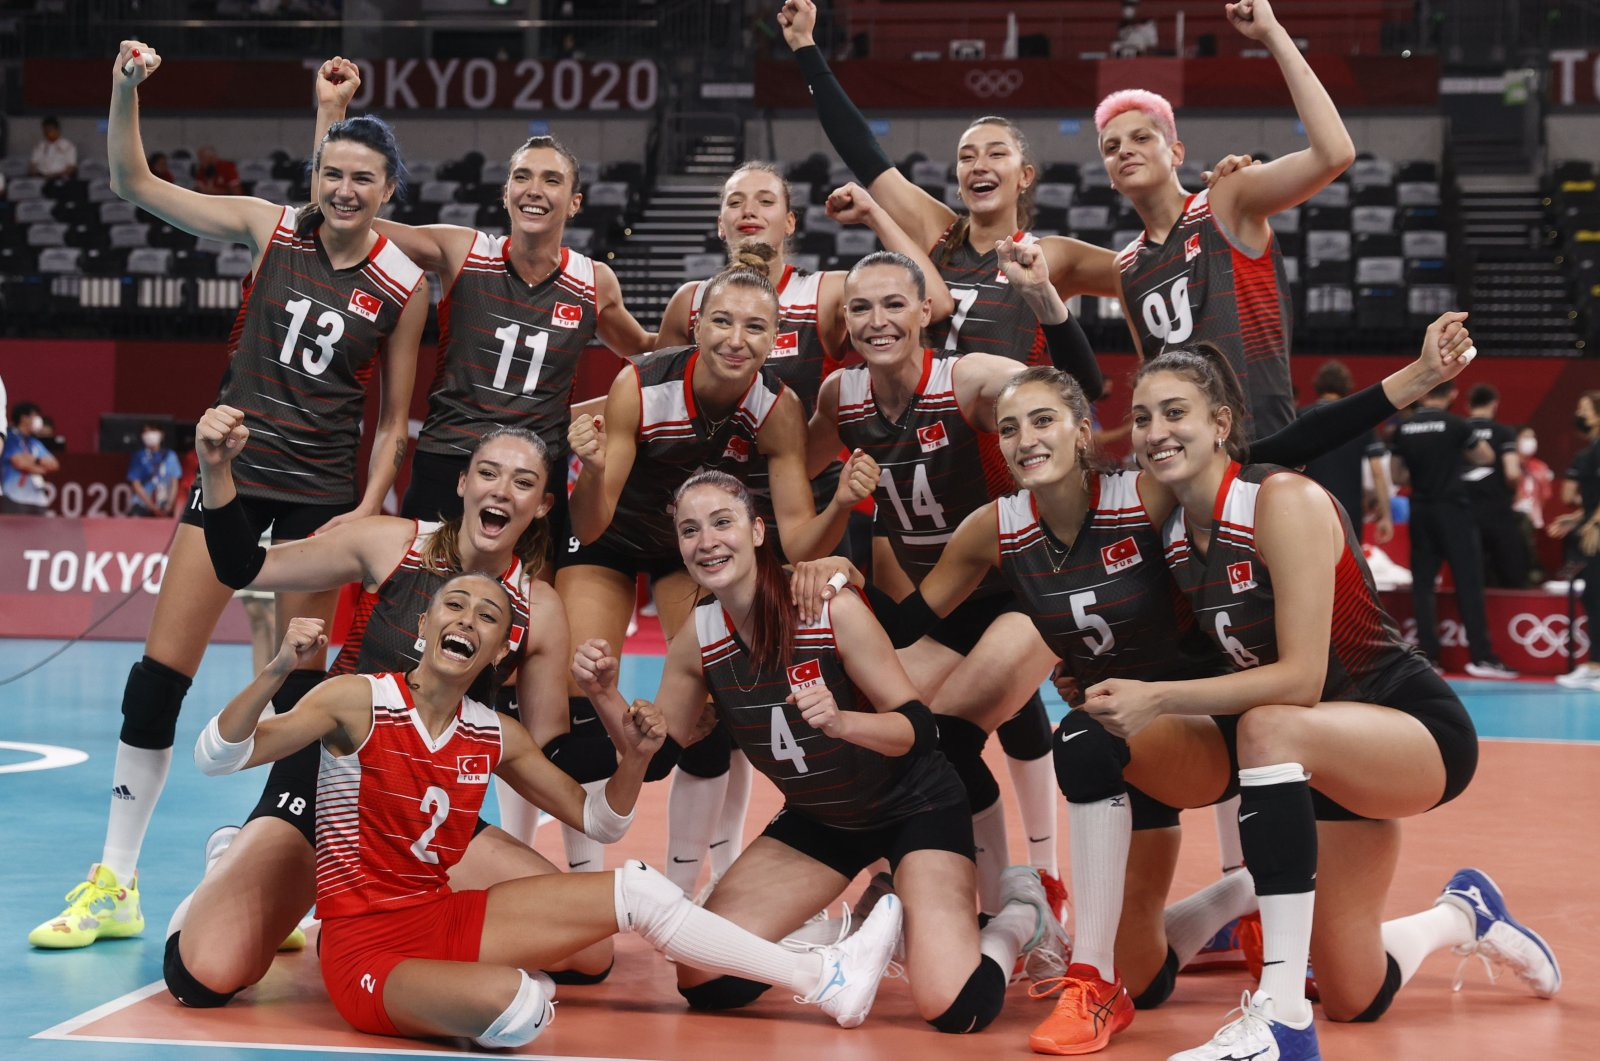 Turkey women's volleyball team members pose for a photo after winning their Tokyo 2020 Olympics Pool B match against the Russian Olympic Committee (ROC),Ariake Arena, Tokyo, Japan, Aug. 2, 2021. (Reuters Photo)